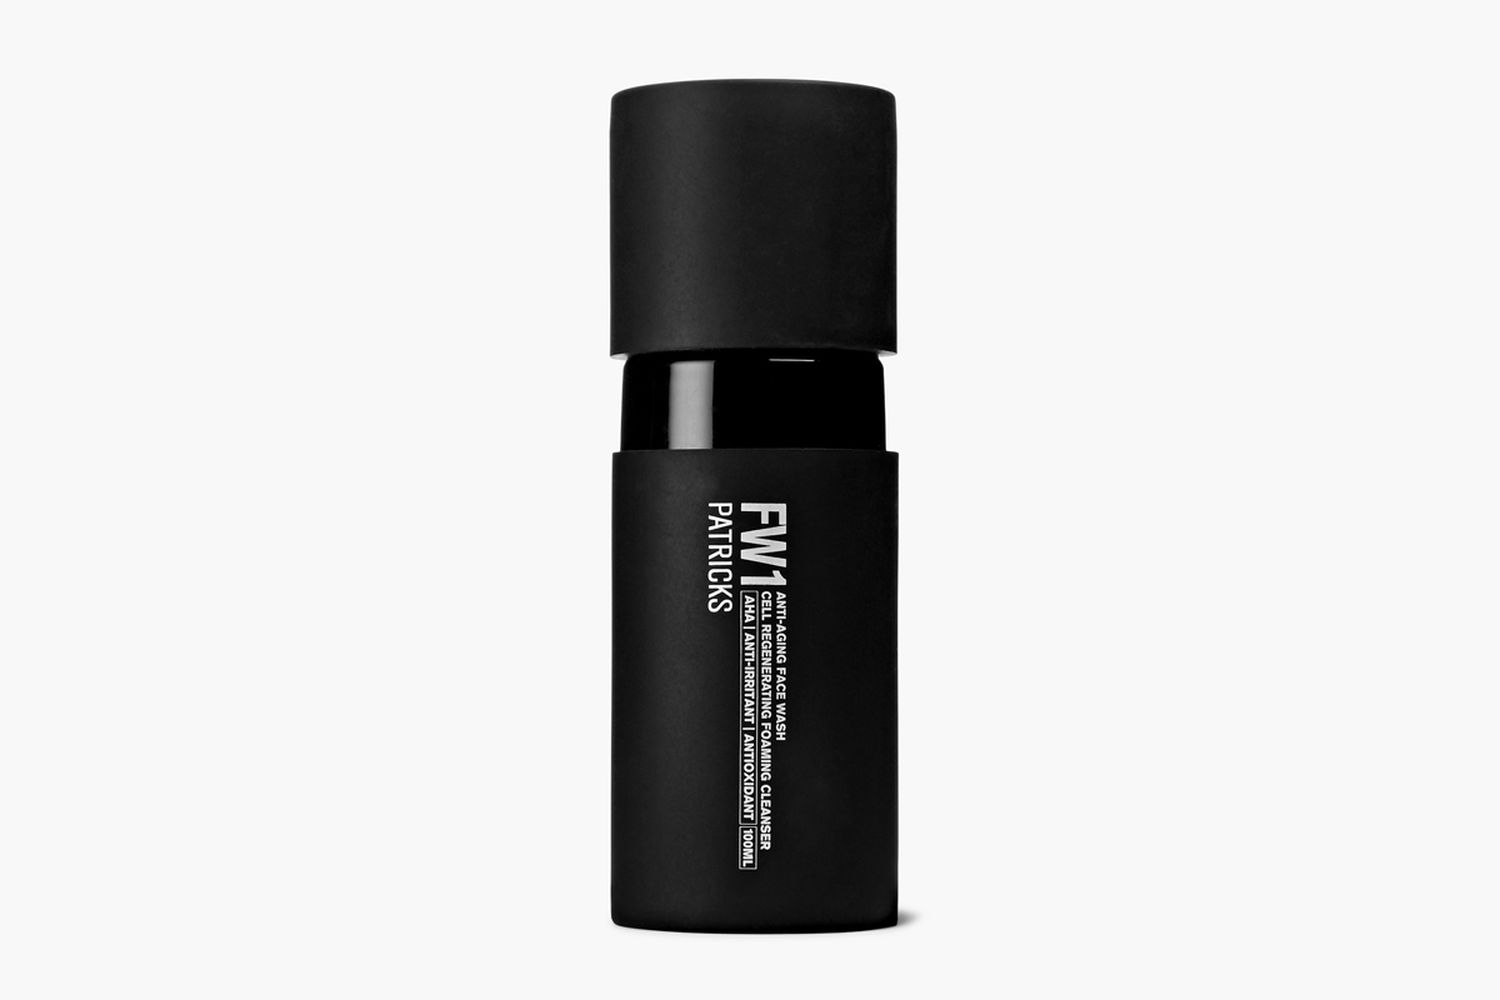 FW1 Anti-Aging Cell Regenerating Foaming Face Wash